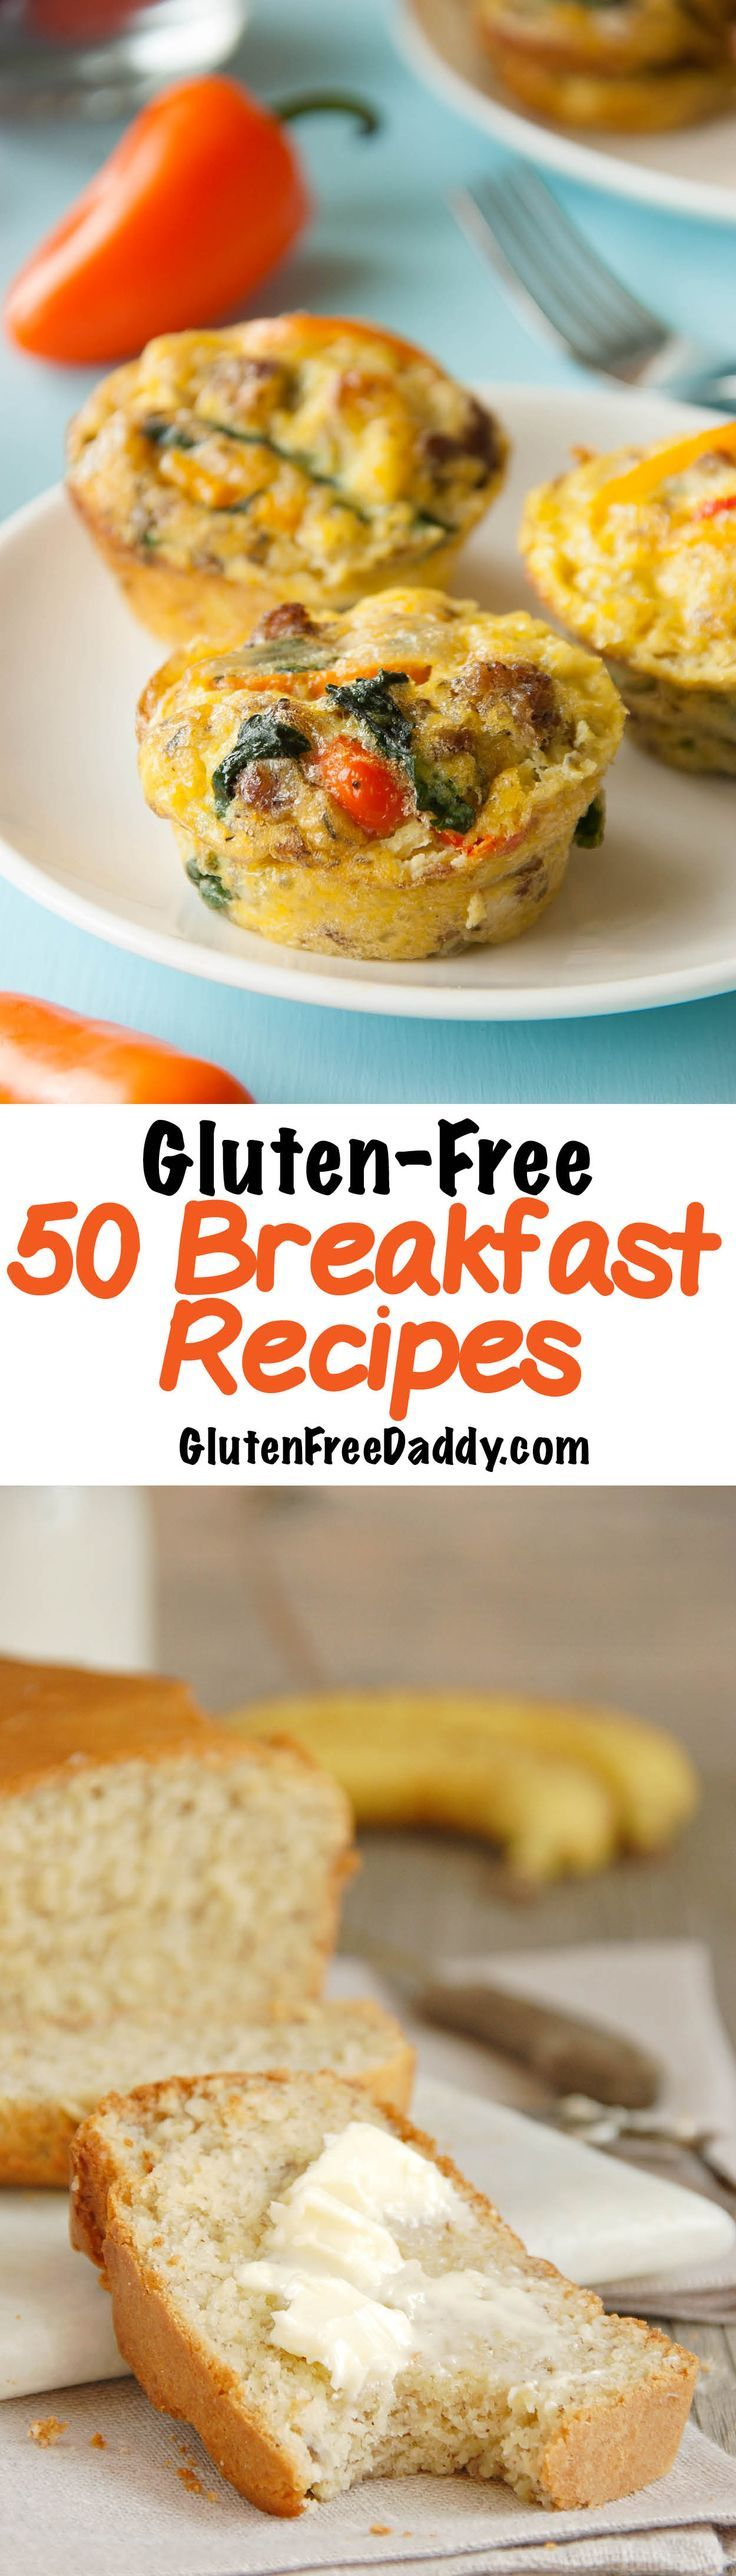 I'm hoping this list of 50 gluten-free breakfast recipes will help me get out of my rut!